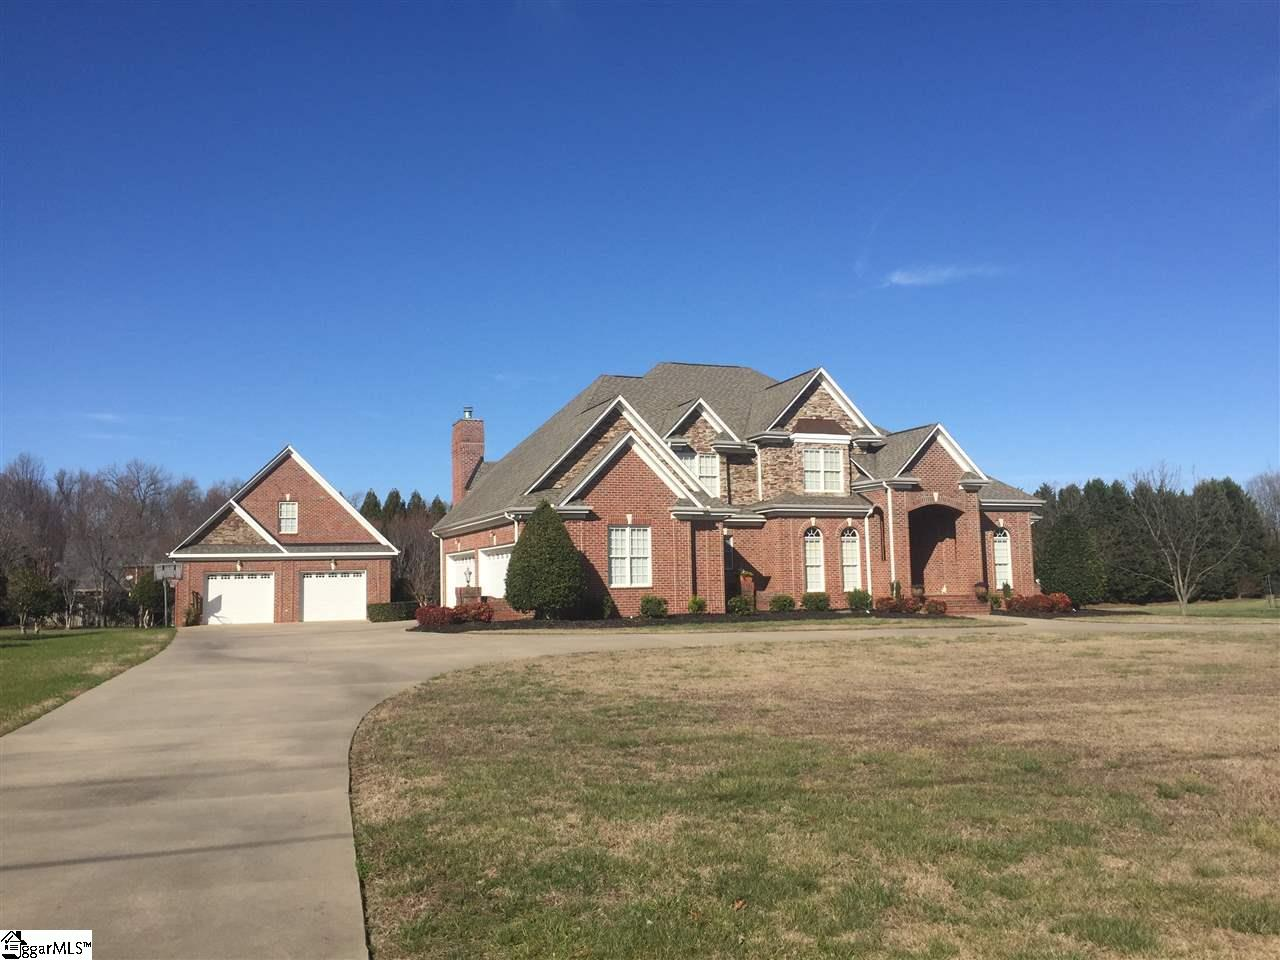 2335 Roper Mountain Road, Simpsonville, SC 29681